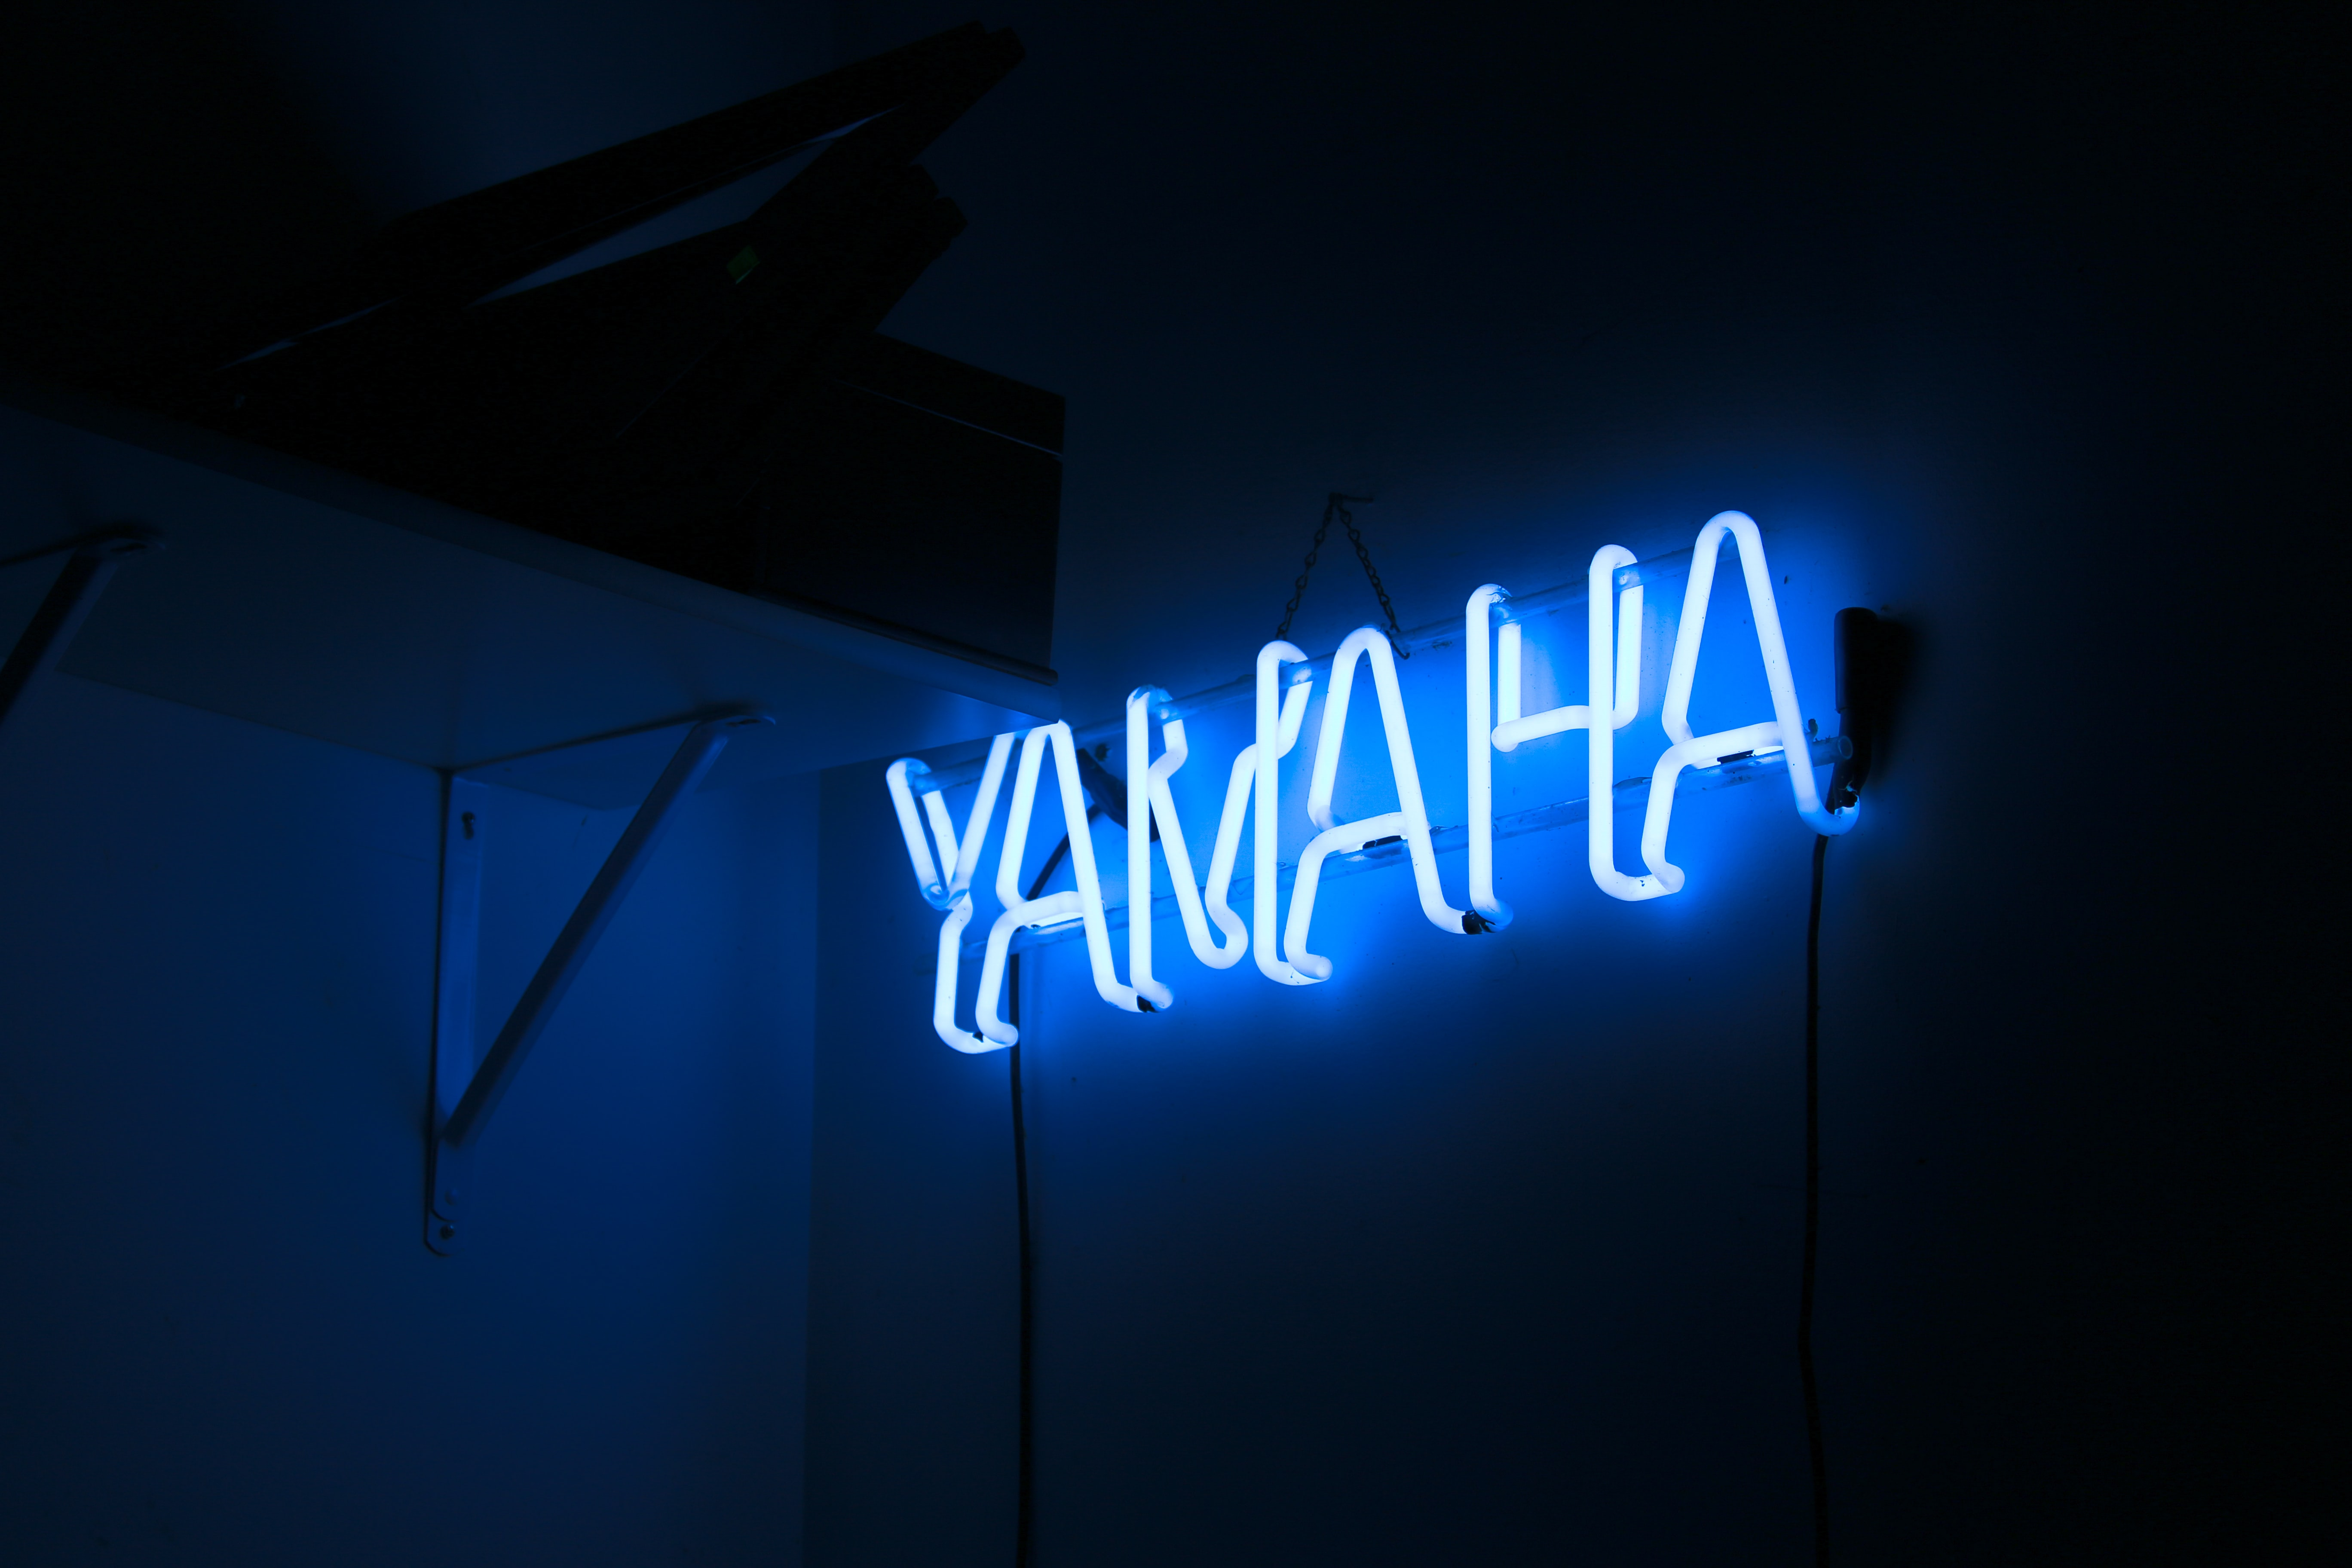 Yamaha neon light signage in the dark